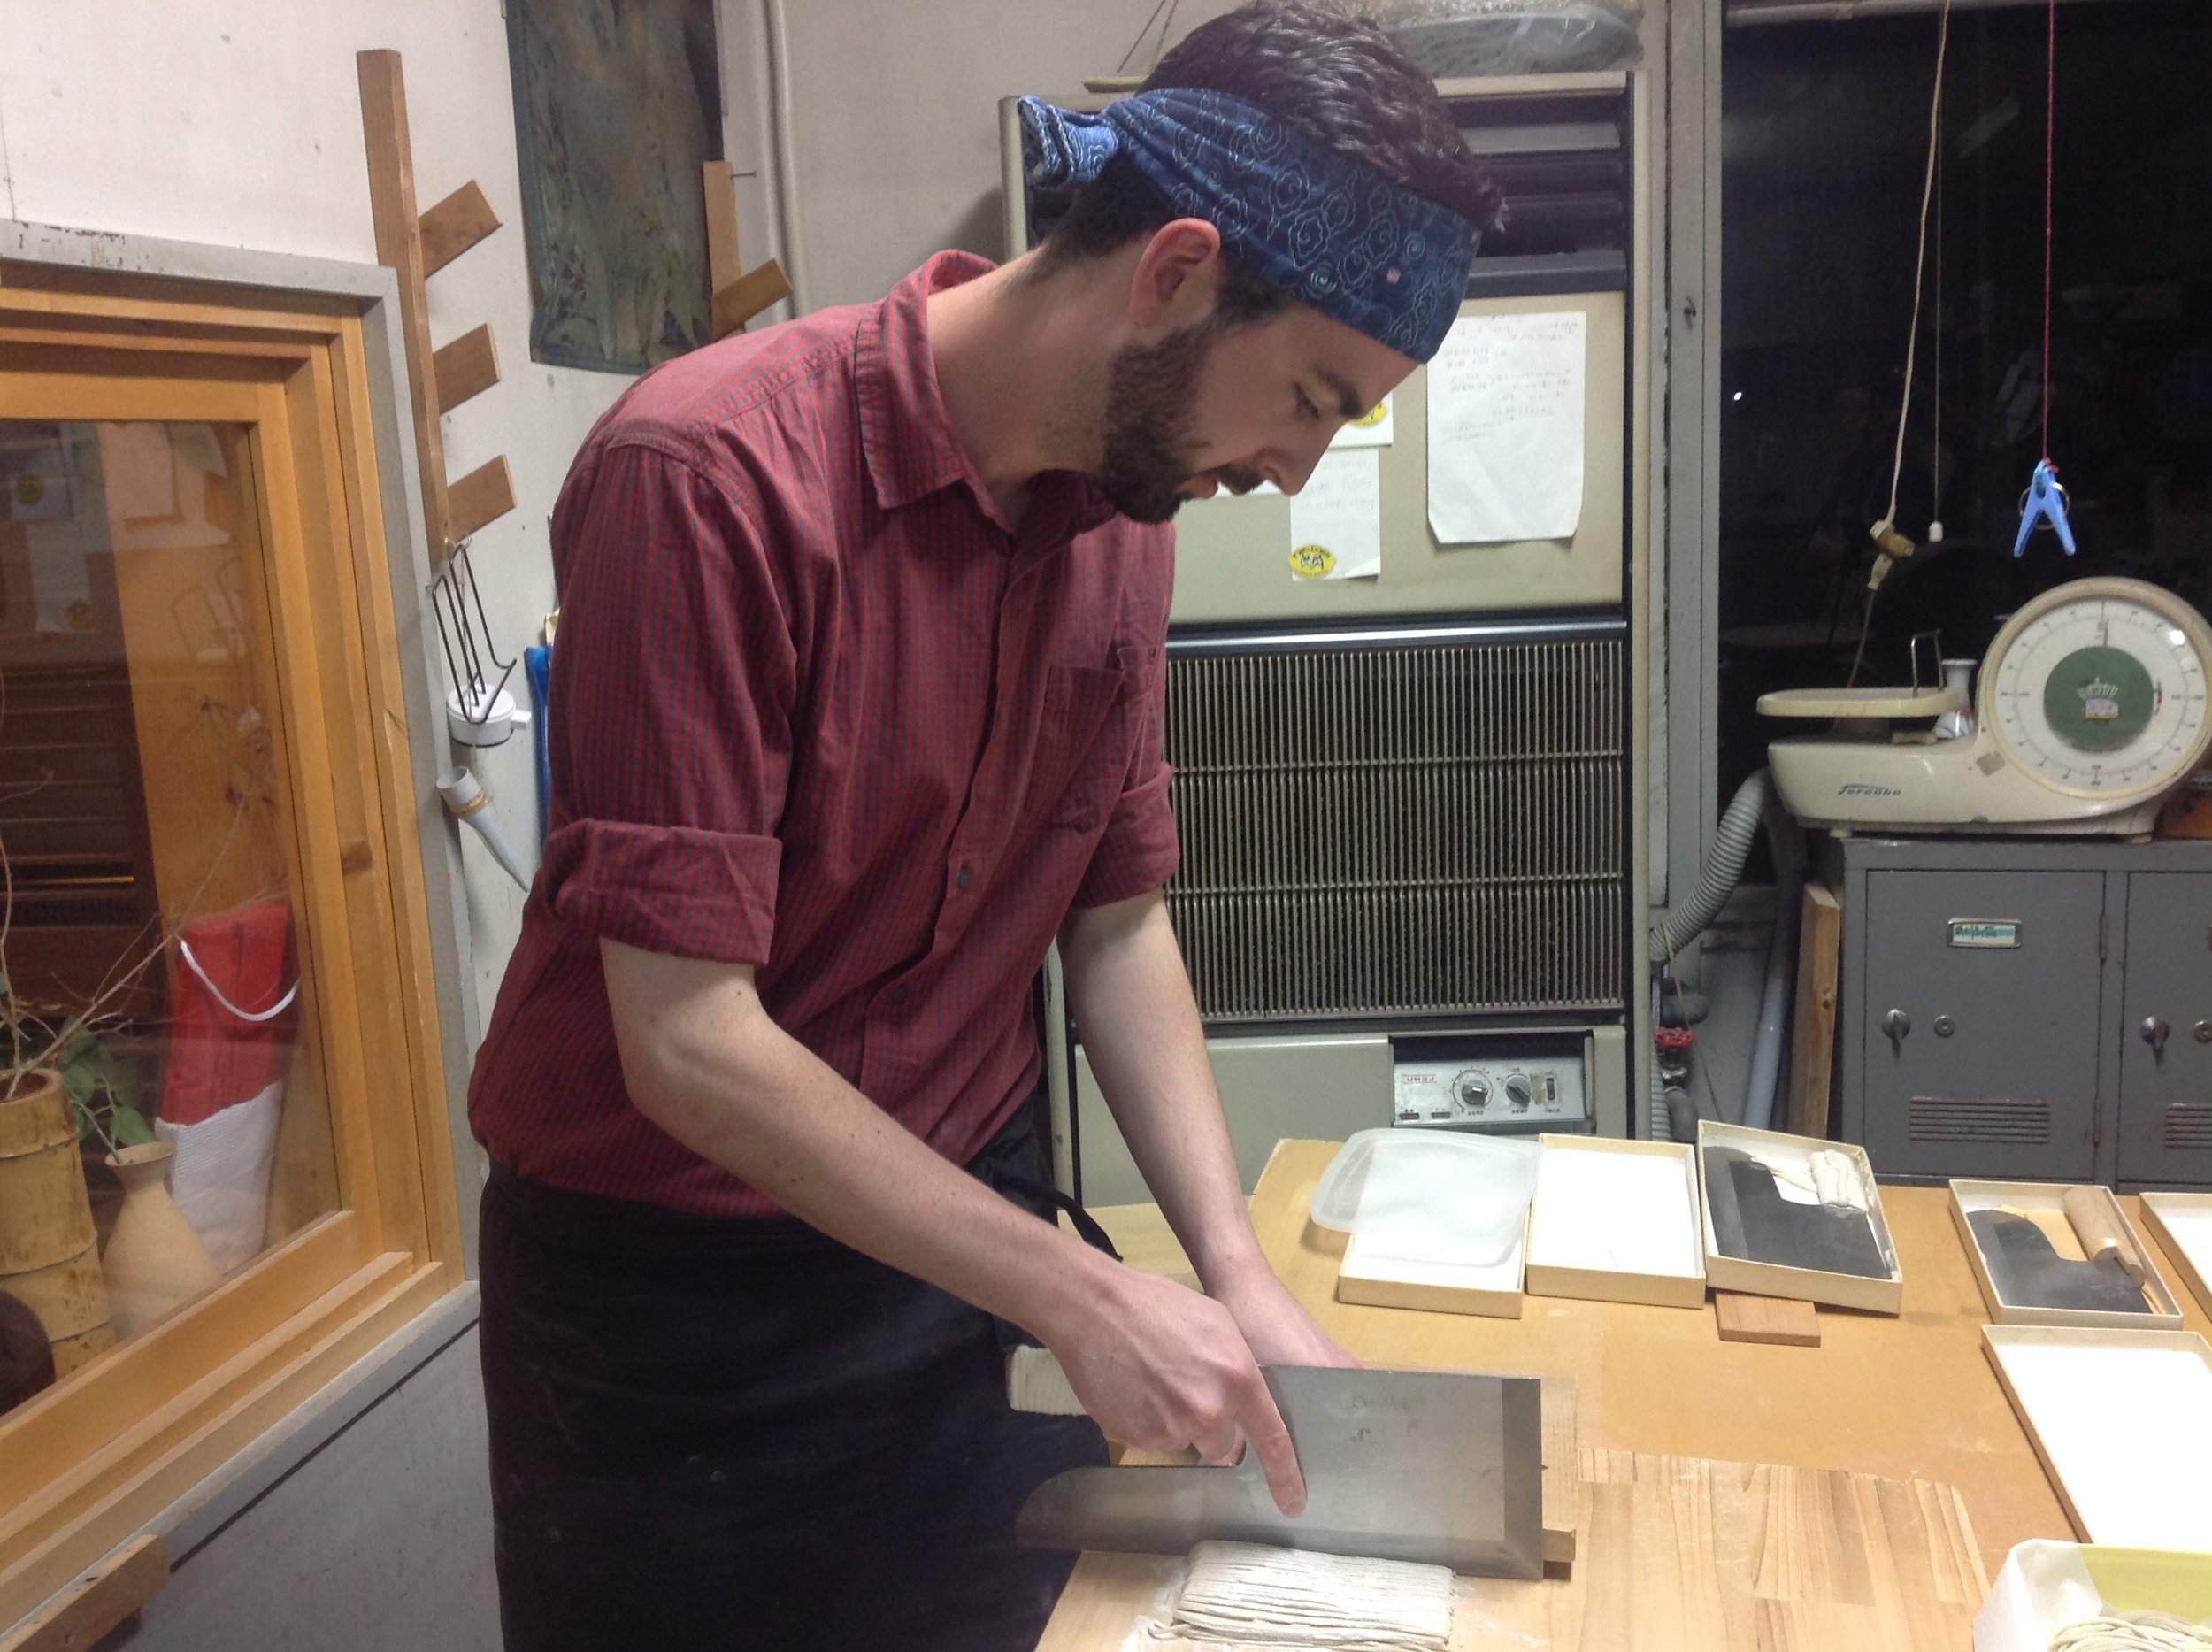 A German Chef Sebastian Sandor learns how to make soba noodles from scratch.